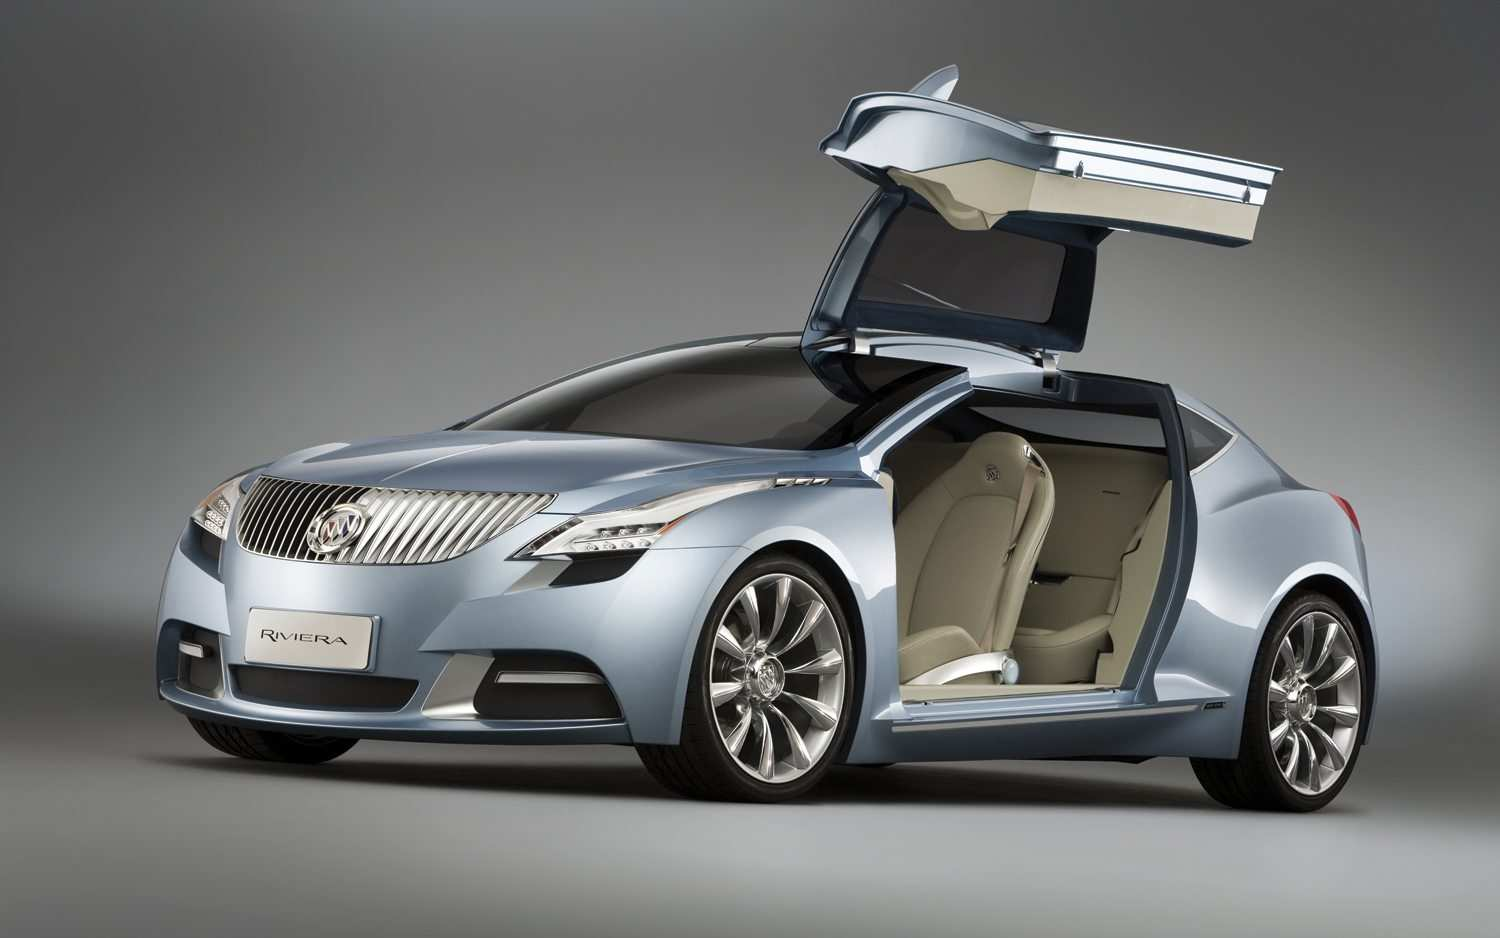 76 Gallery of Buick Riviera 2020 Performance with Buick Riviera 2020